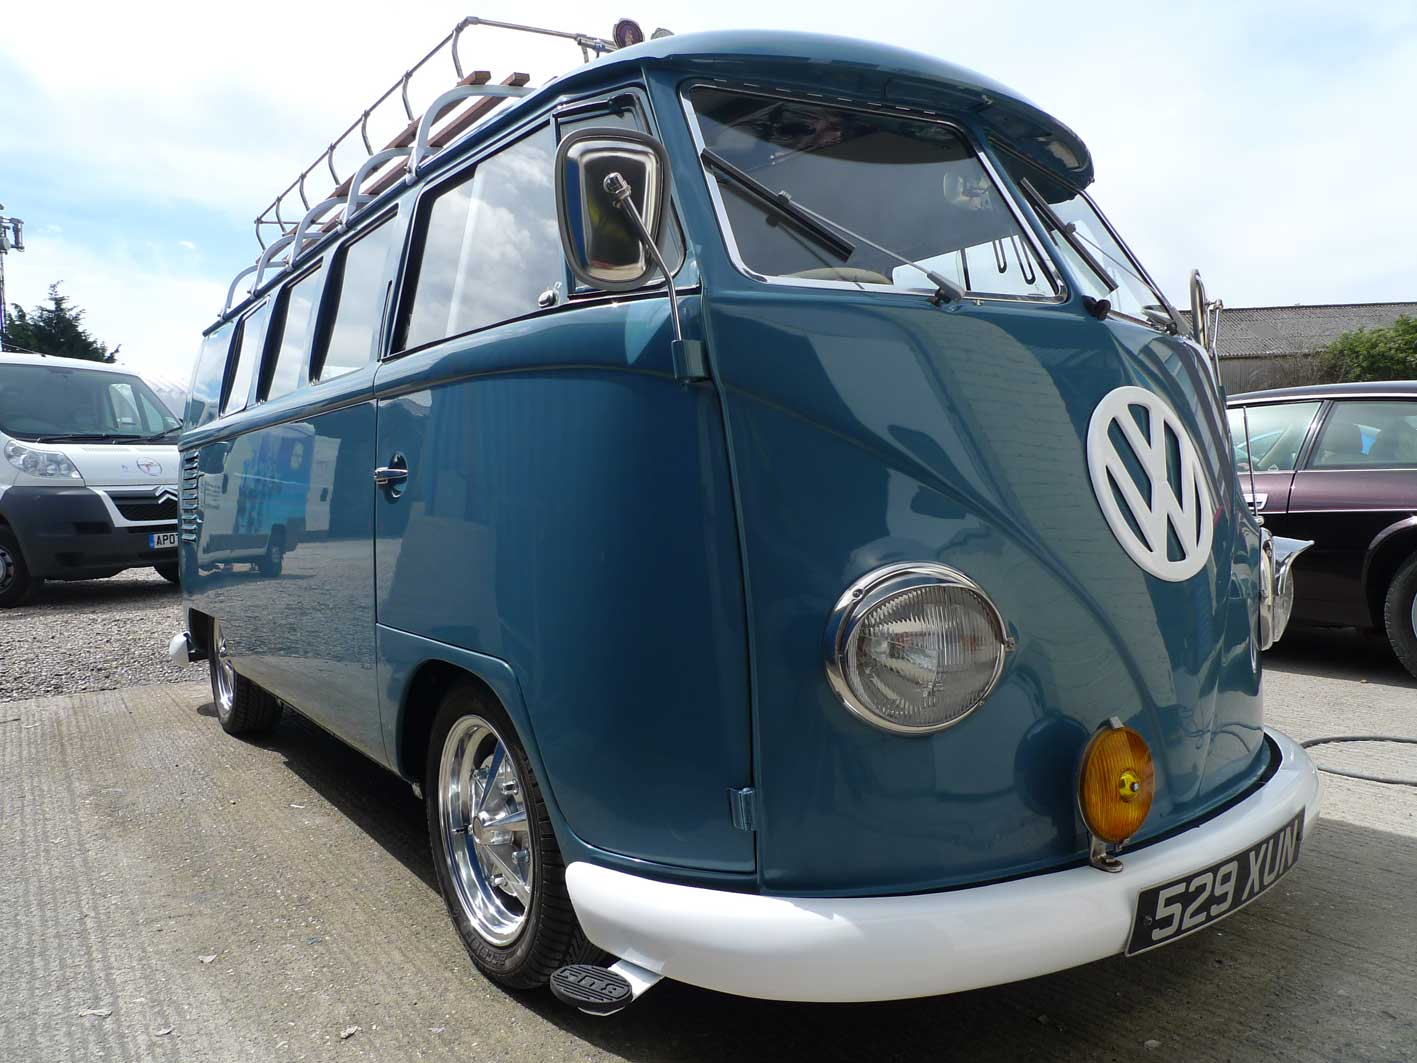 Charming Ibanez Gio Wiring Huge 3 Pickup Les Paul Wiring Diagram Shaped Di Marizo 3 Coil Pickup Youthful Les Paul 3 Way Switch BrownHow To Wire Guitar Double Trophy Win At VW Whitenoise Festival For 1956 Campervan ..